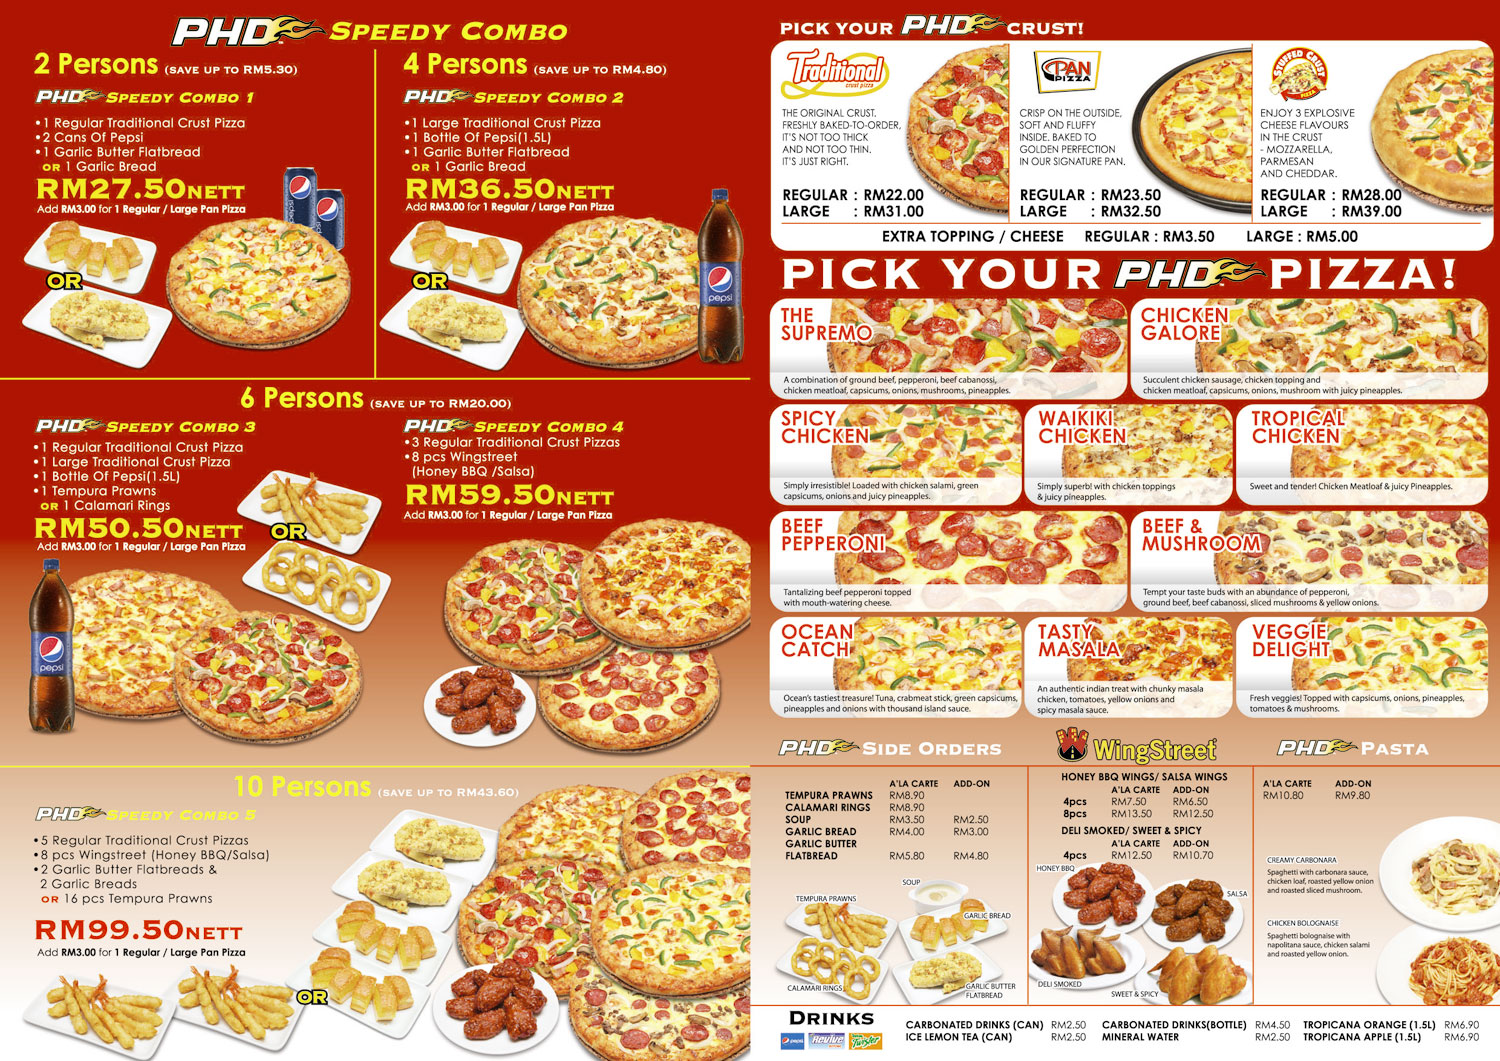 Pizza Hut. Many Pizza Hut locations offer a teacher discount of up to 20% with a valid school ID at the register. While this discount varies and is not available at all locations, it's definitely worth a shot to flash your teacher ID the next time you visit your local Pizza Hut restaurant.